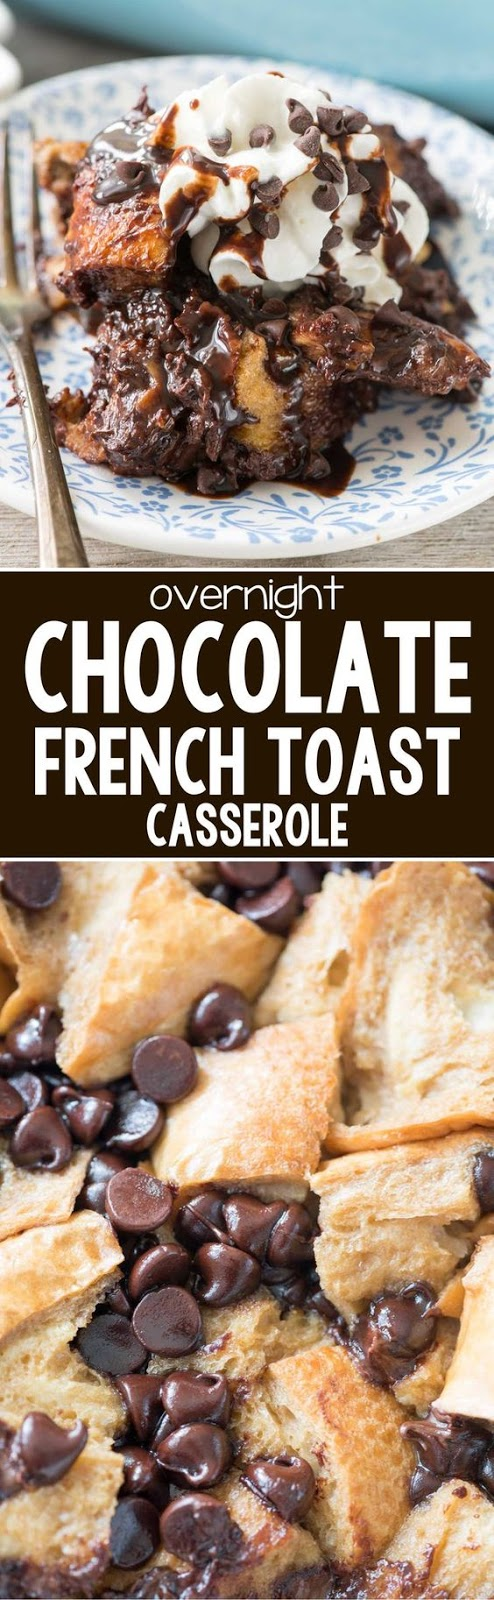 CHOCOLATE FRENCH TOAST CASSEROLE